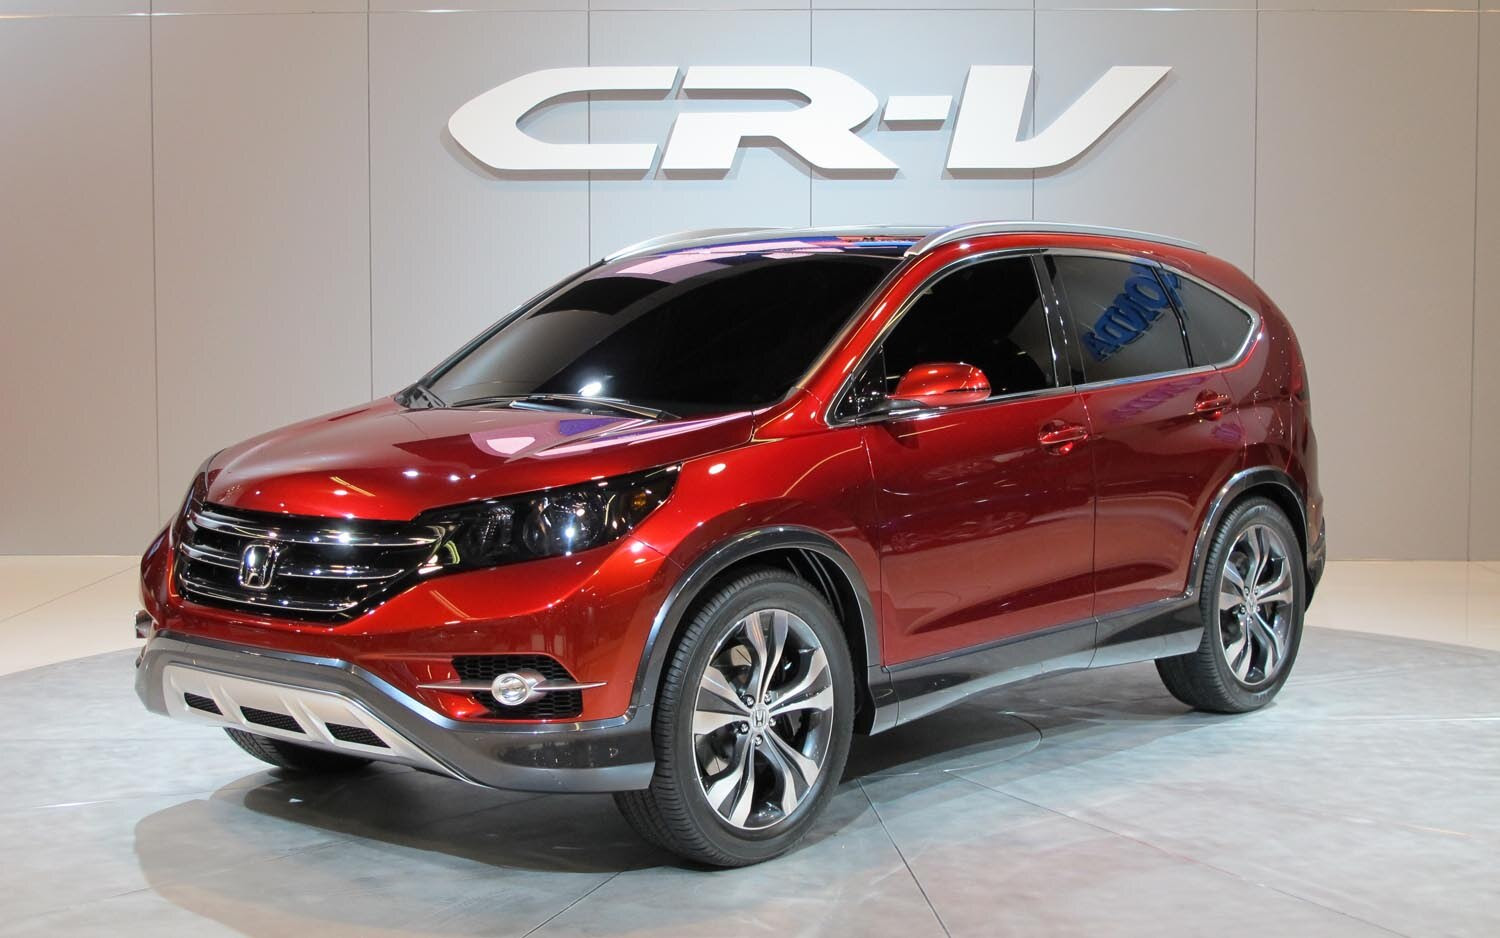 2012 Honda Cr V Rumored To Get New Optional Engine To Go With New Style Photo Image Gallery